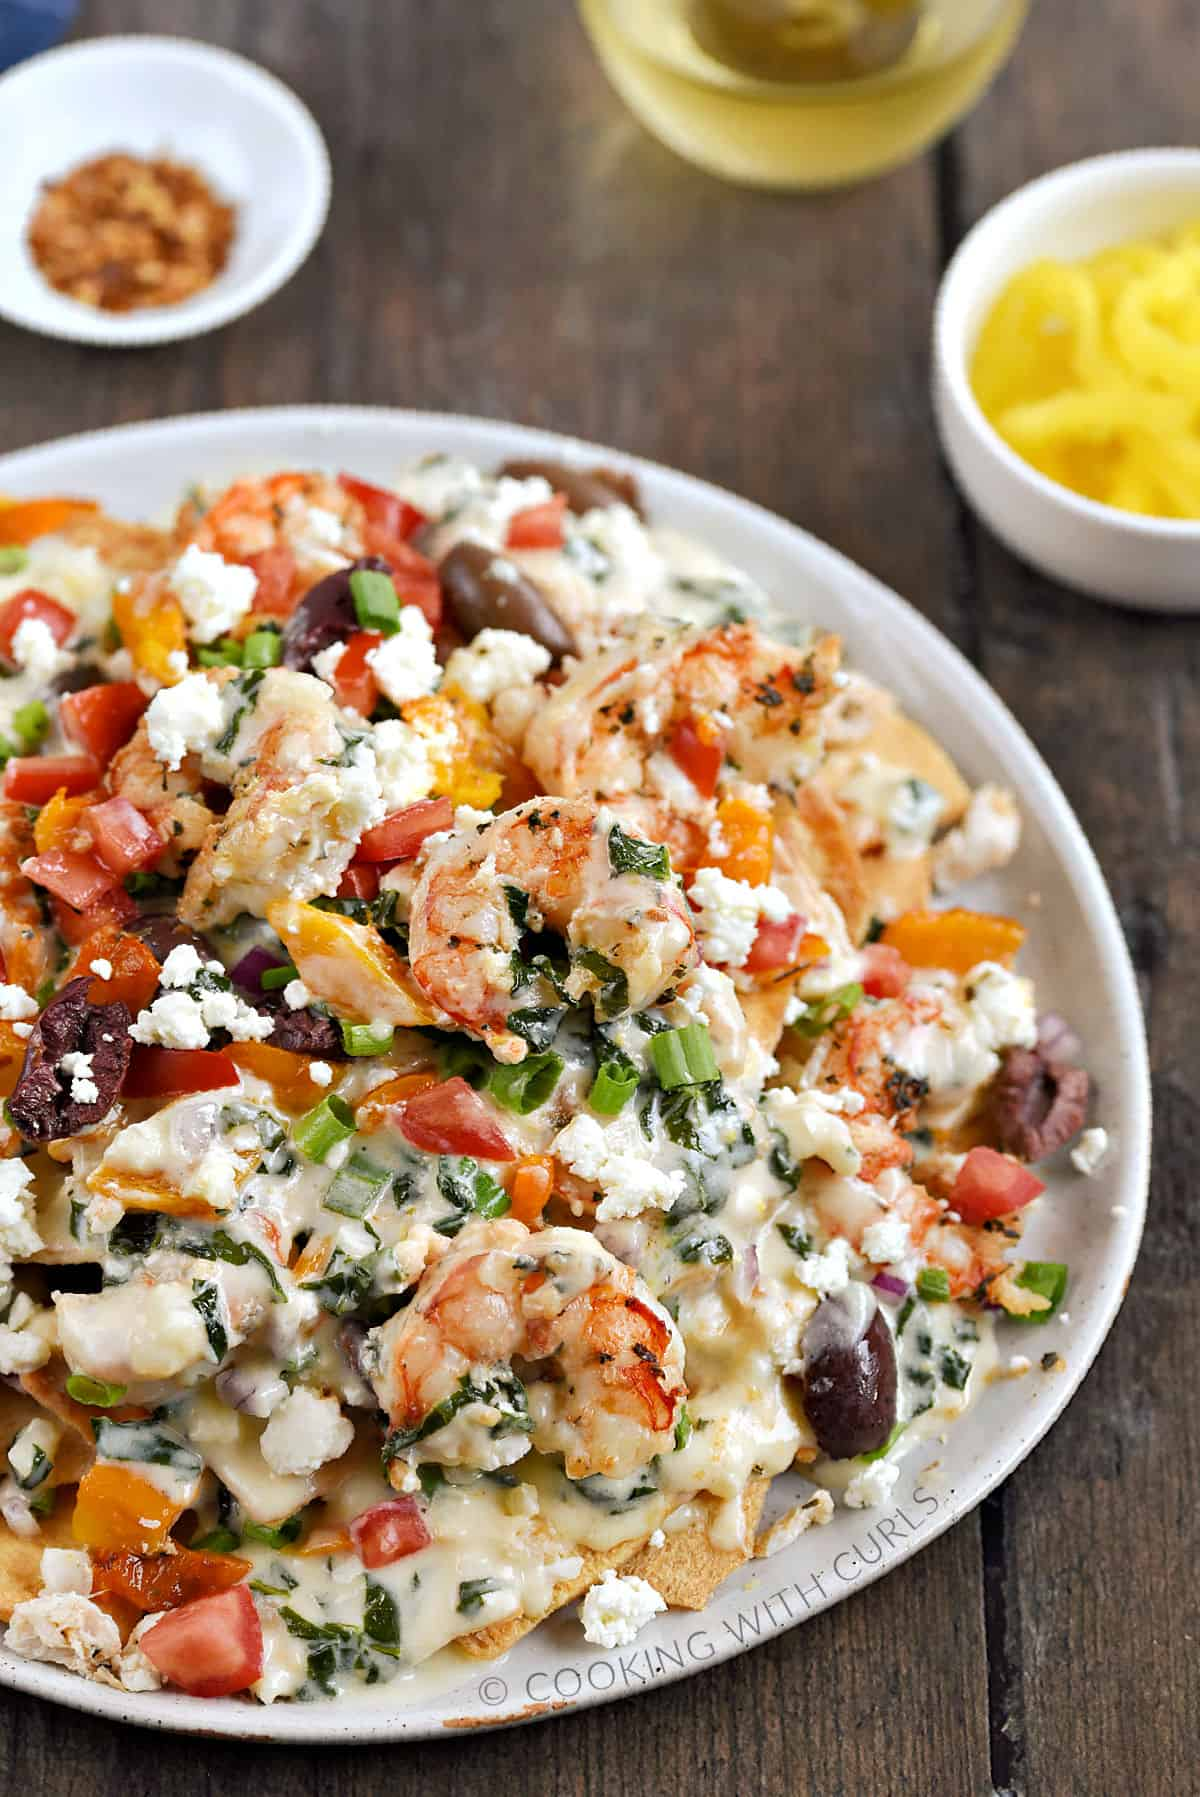 A large plate topped with shrimp, crab, diced tomatoes, olives, orange peppers, green onions, pita chips, and spinach cheese sauce.